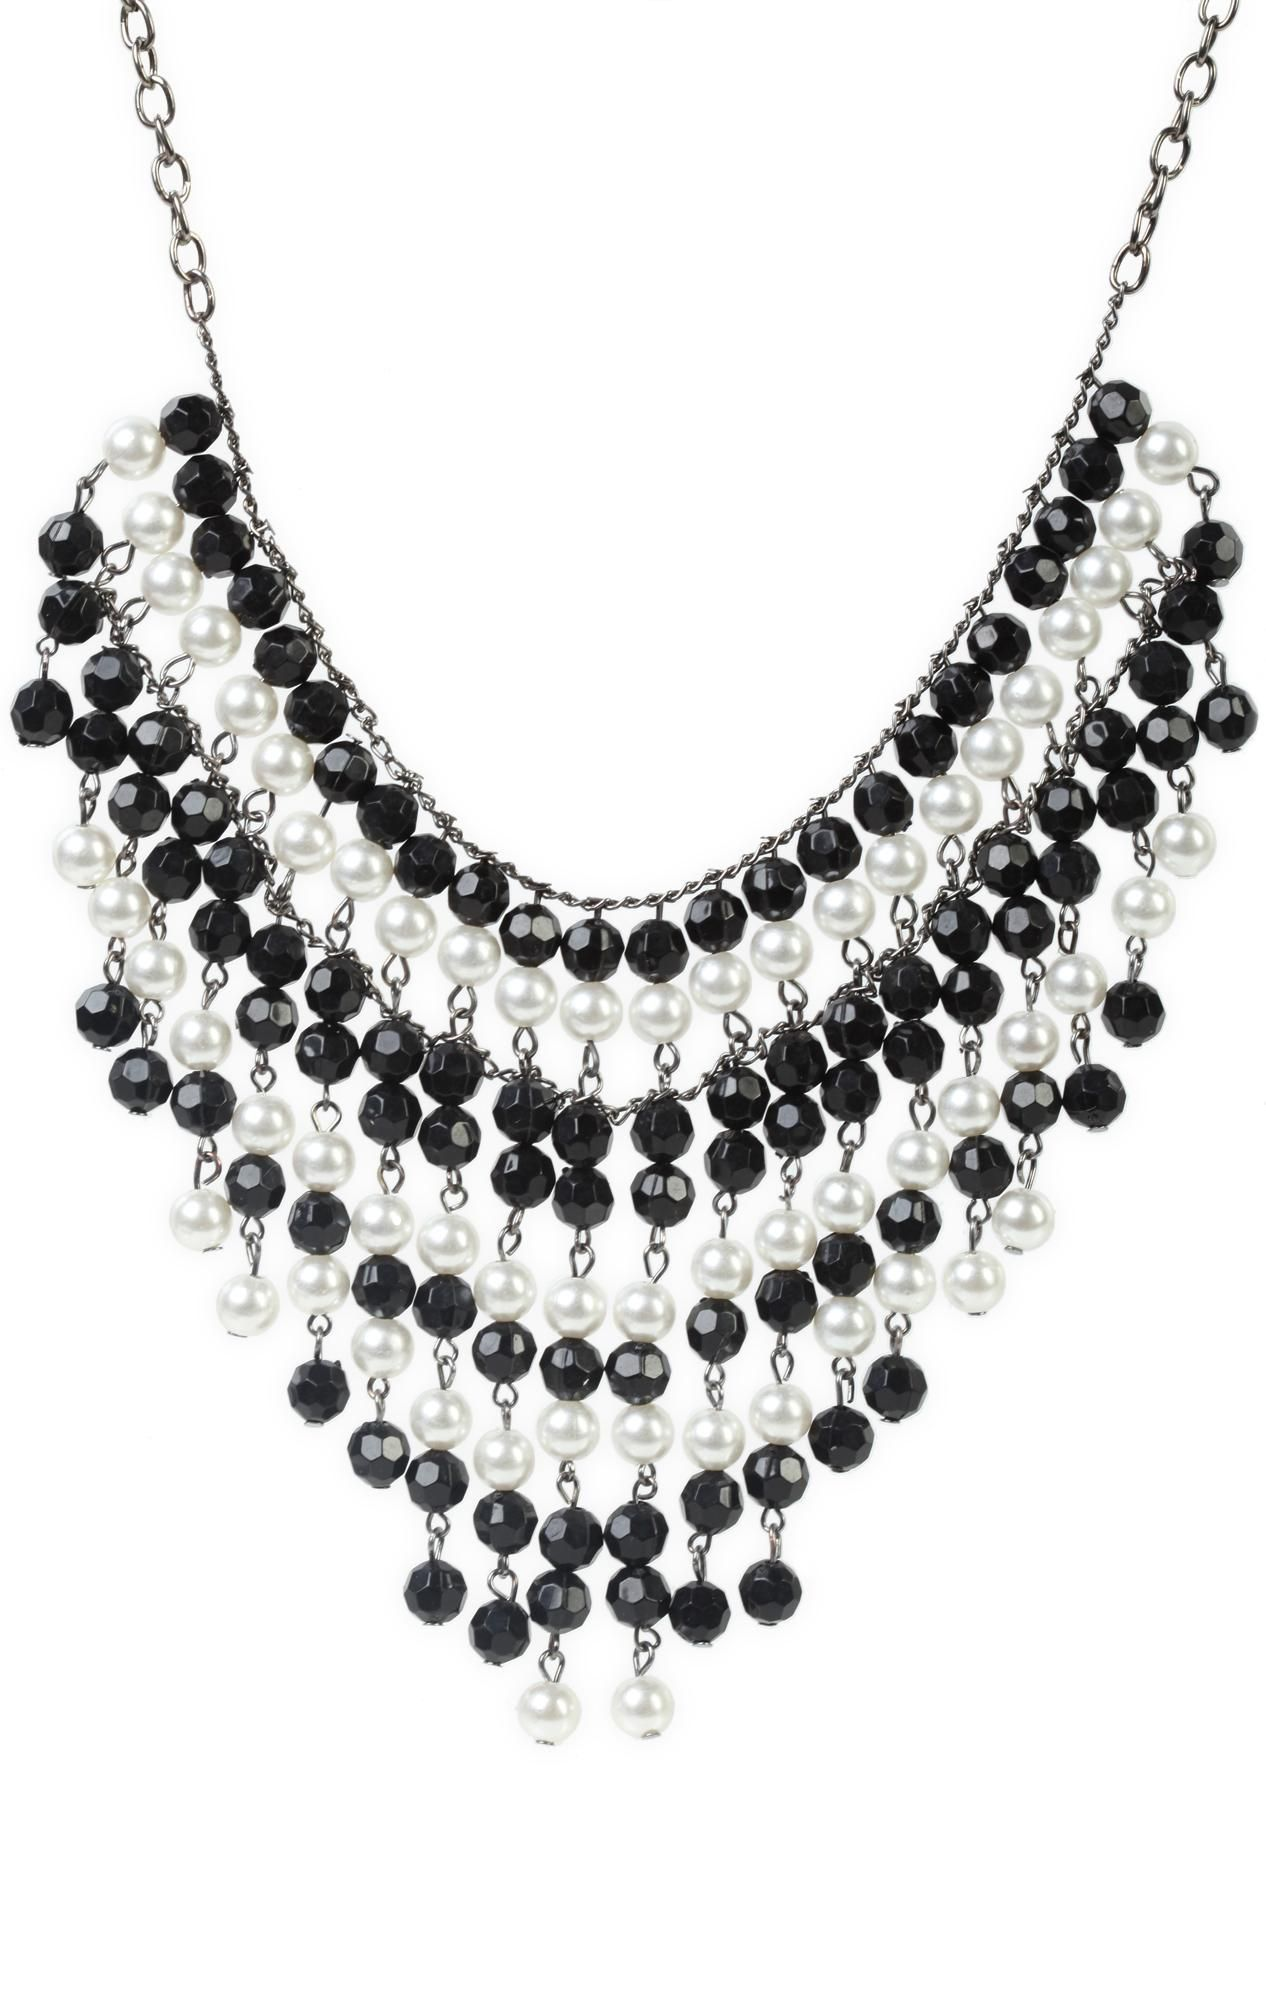 Pearl Statement Necklace 9 30